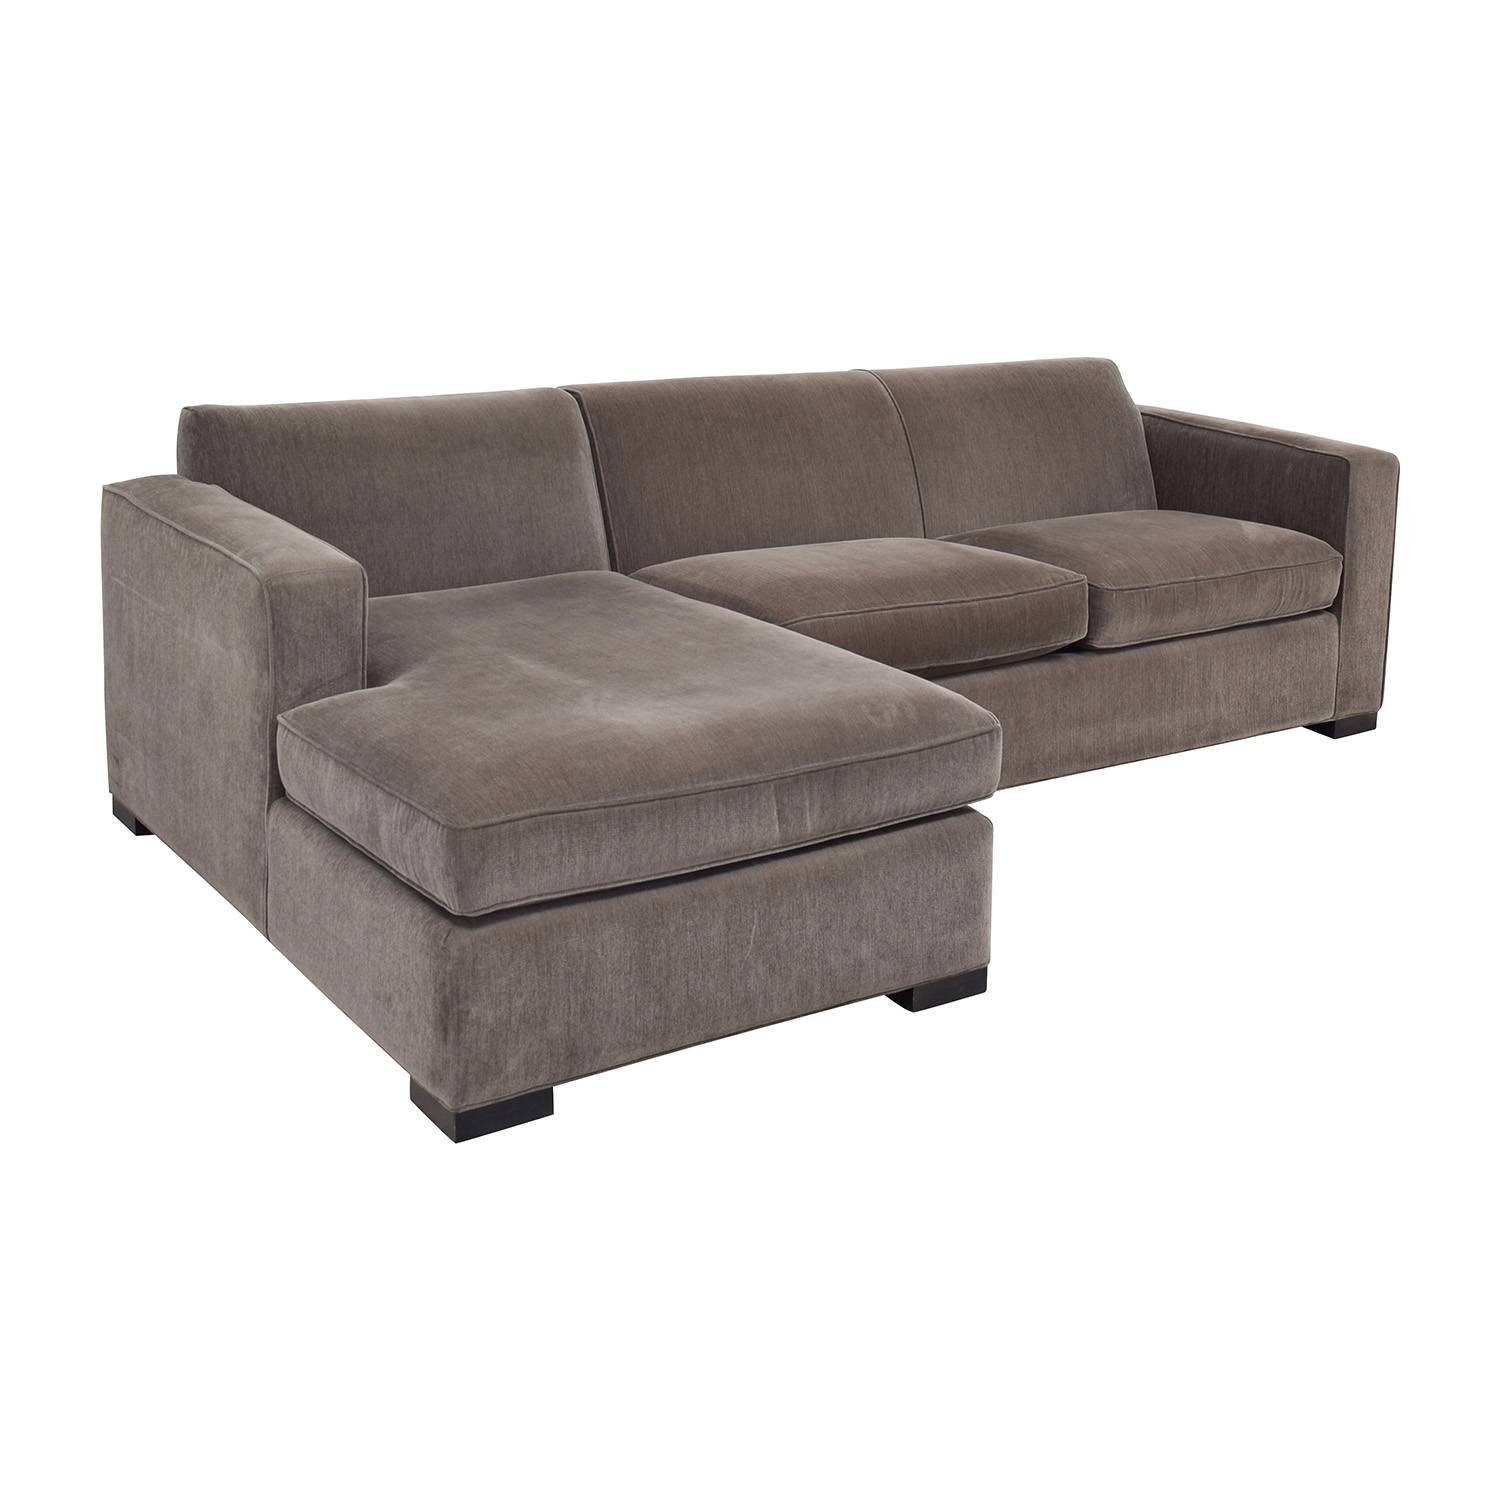 58% Off - Room & Board Room & Board Ian Grey Sectional / Sofas for Room and Board Sectional Sofa (Image 1 of 25)